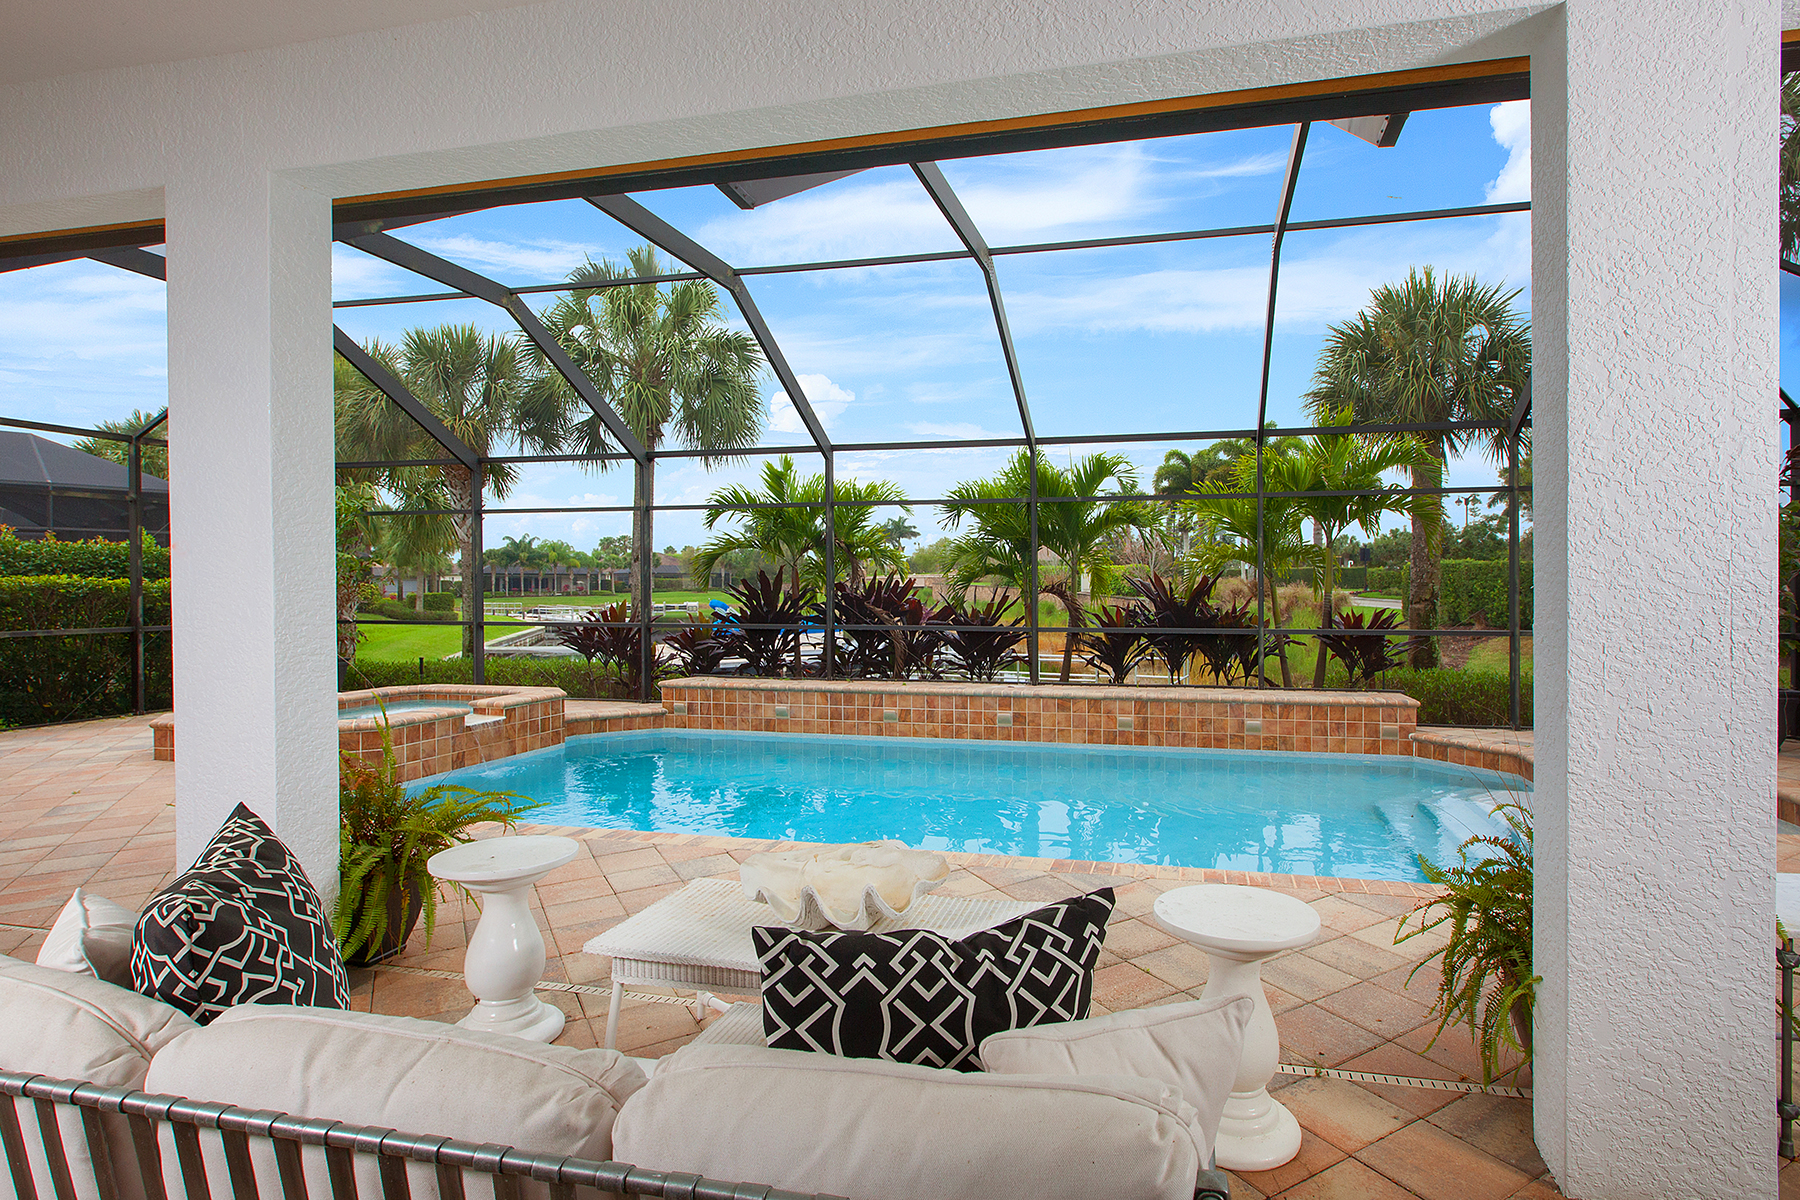 Single Family Home for Sale at QUARRY - SPINNER COVE LANE 8805 Spinner Cove Ln Naples, Florida, 34120 United States